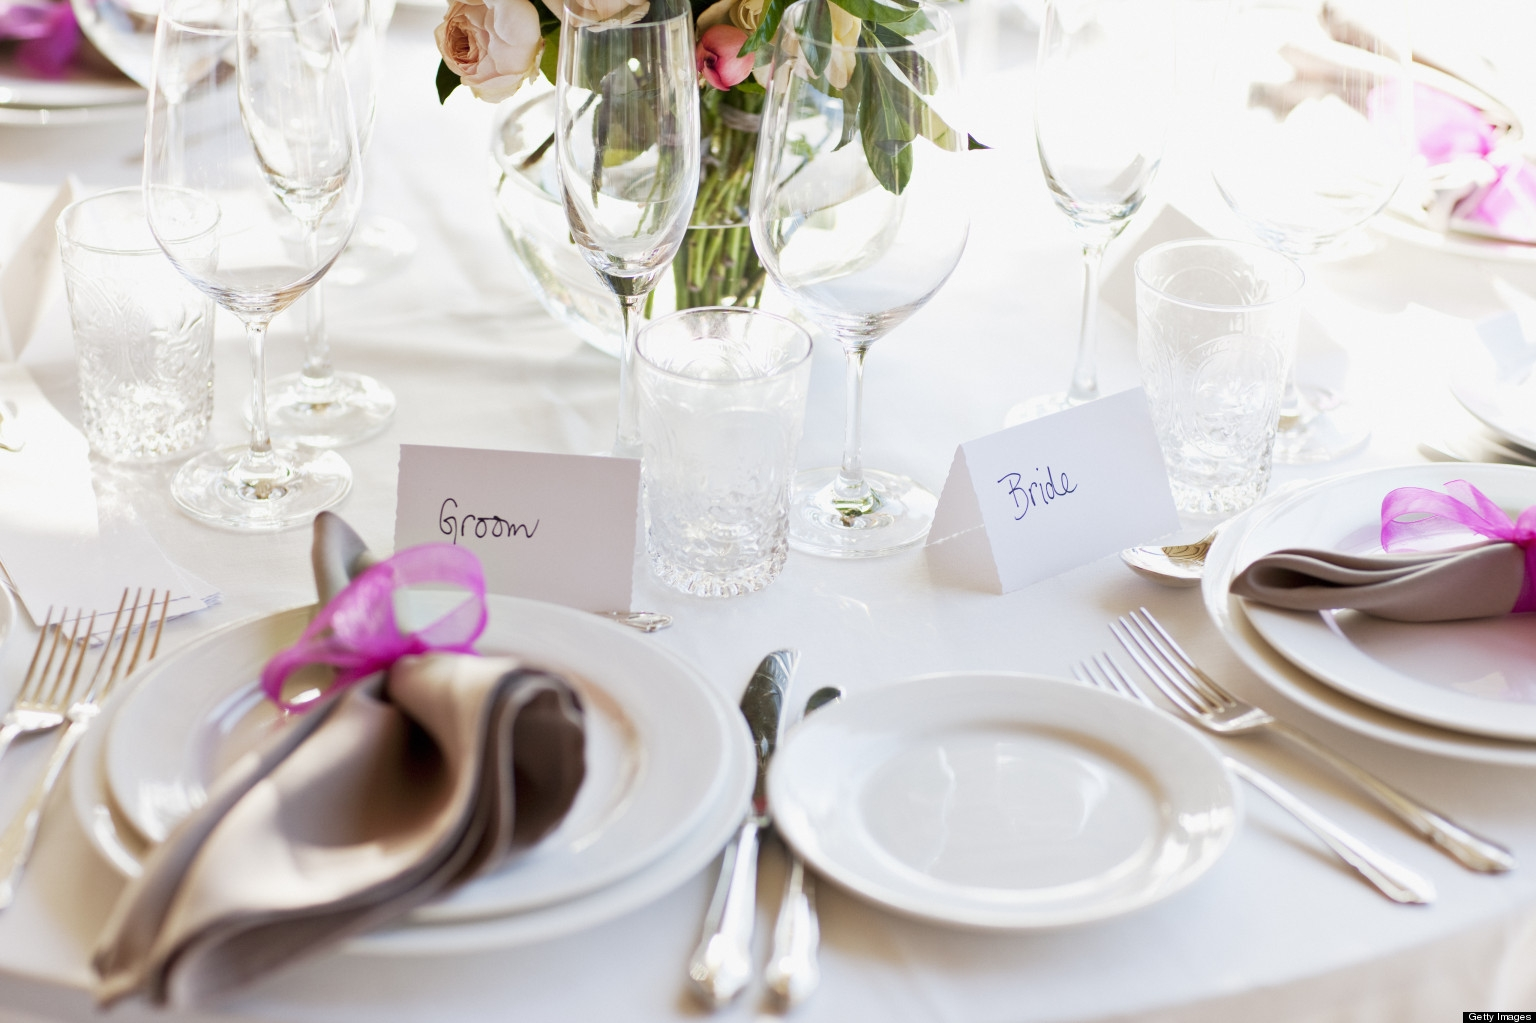 How to Plan to Cut the Wedding Catering Costs?